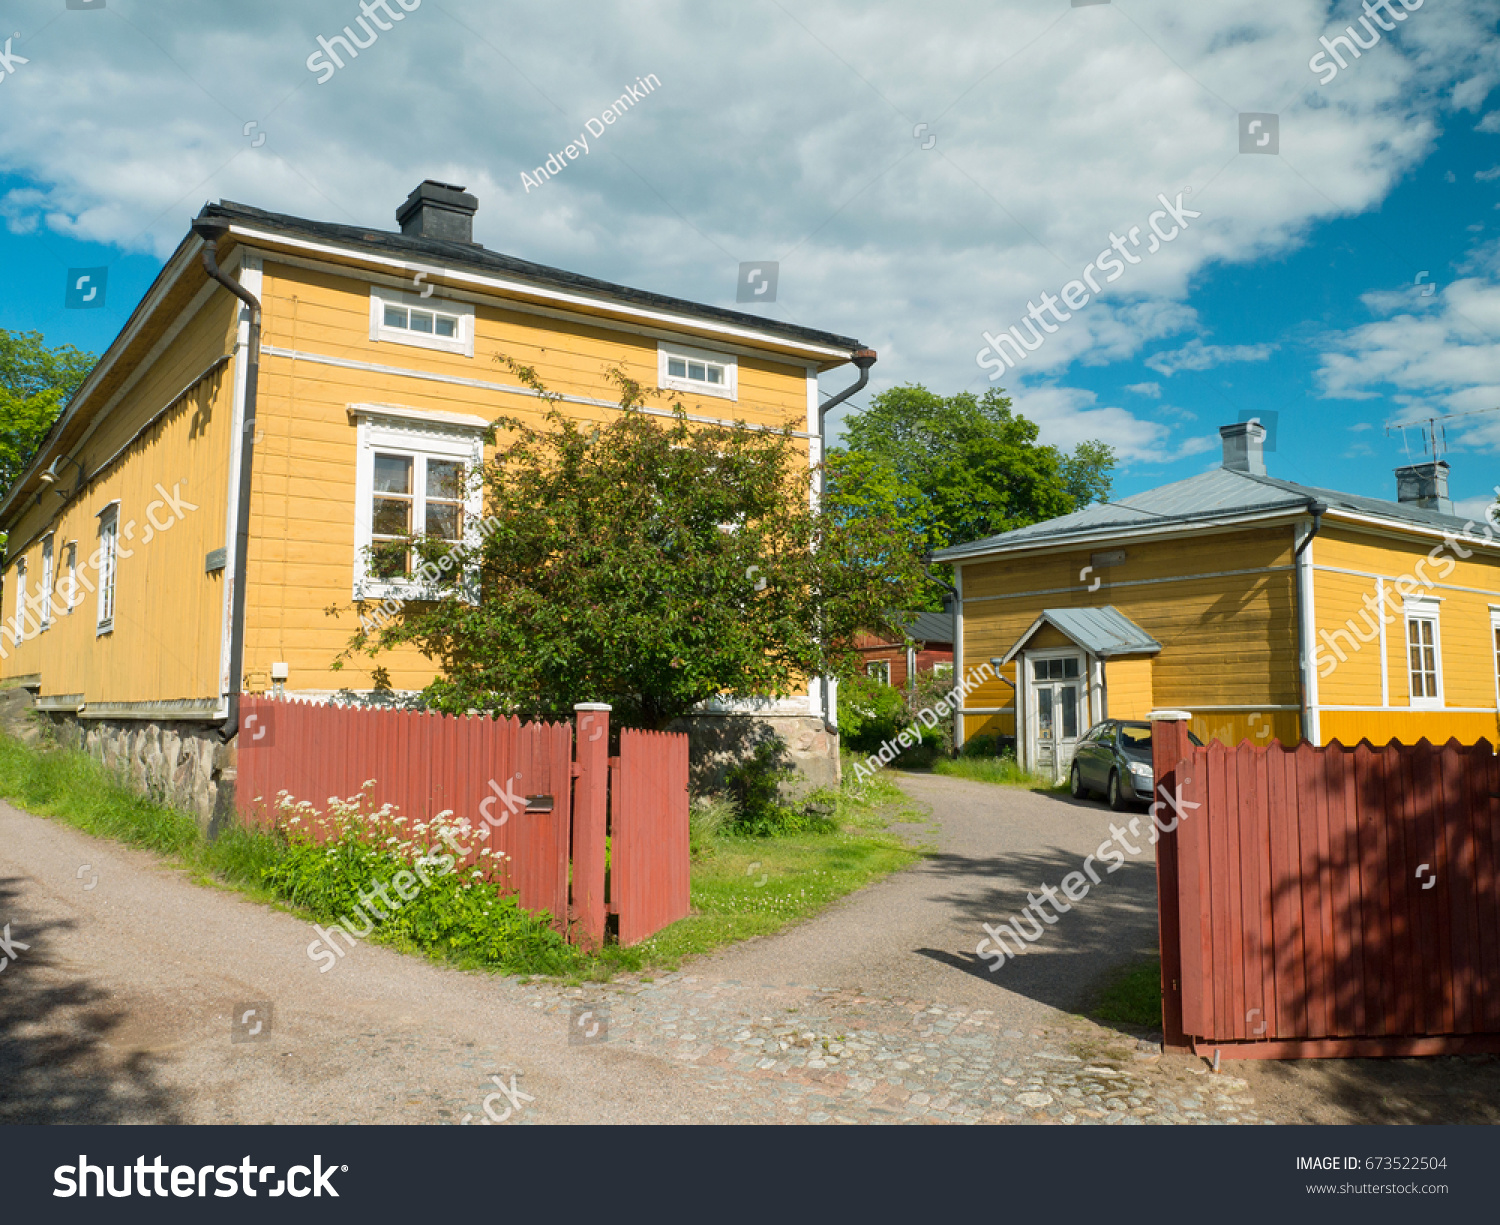 pictures of houses painted yellow